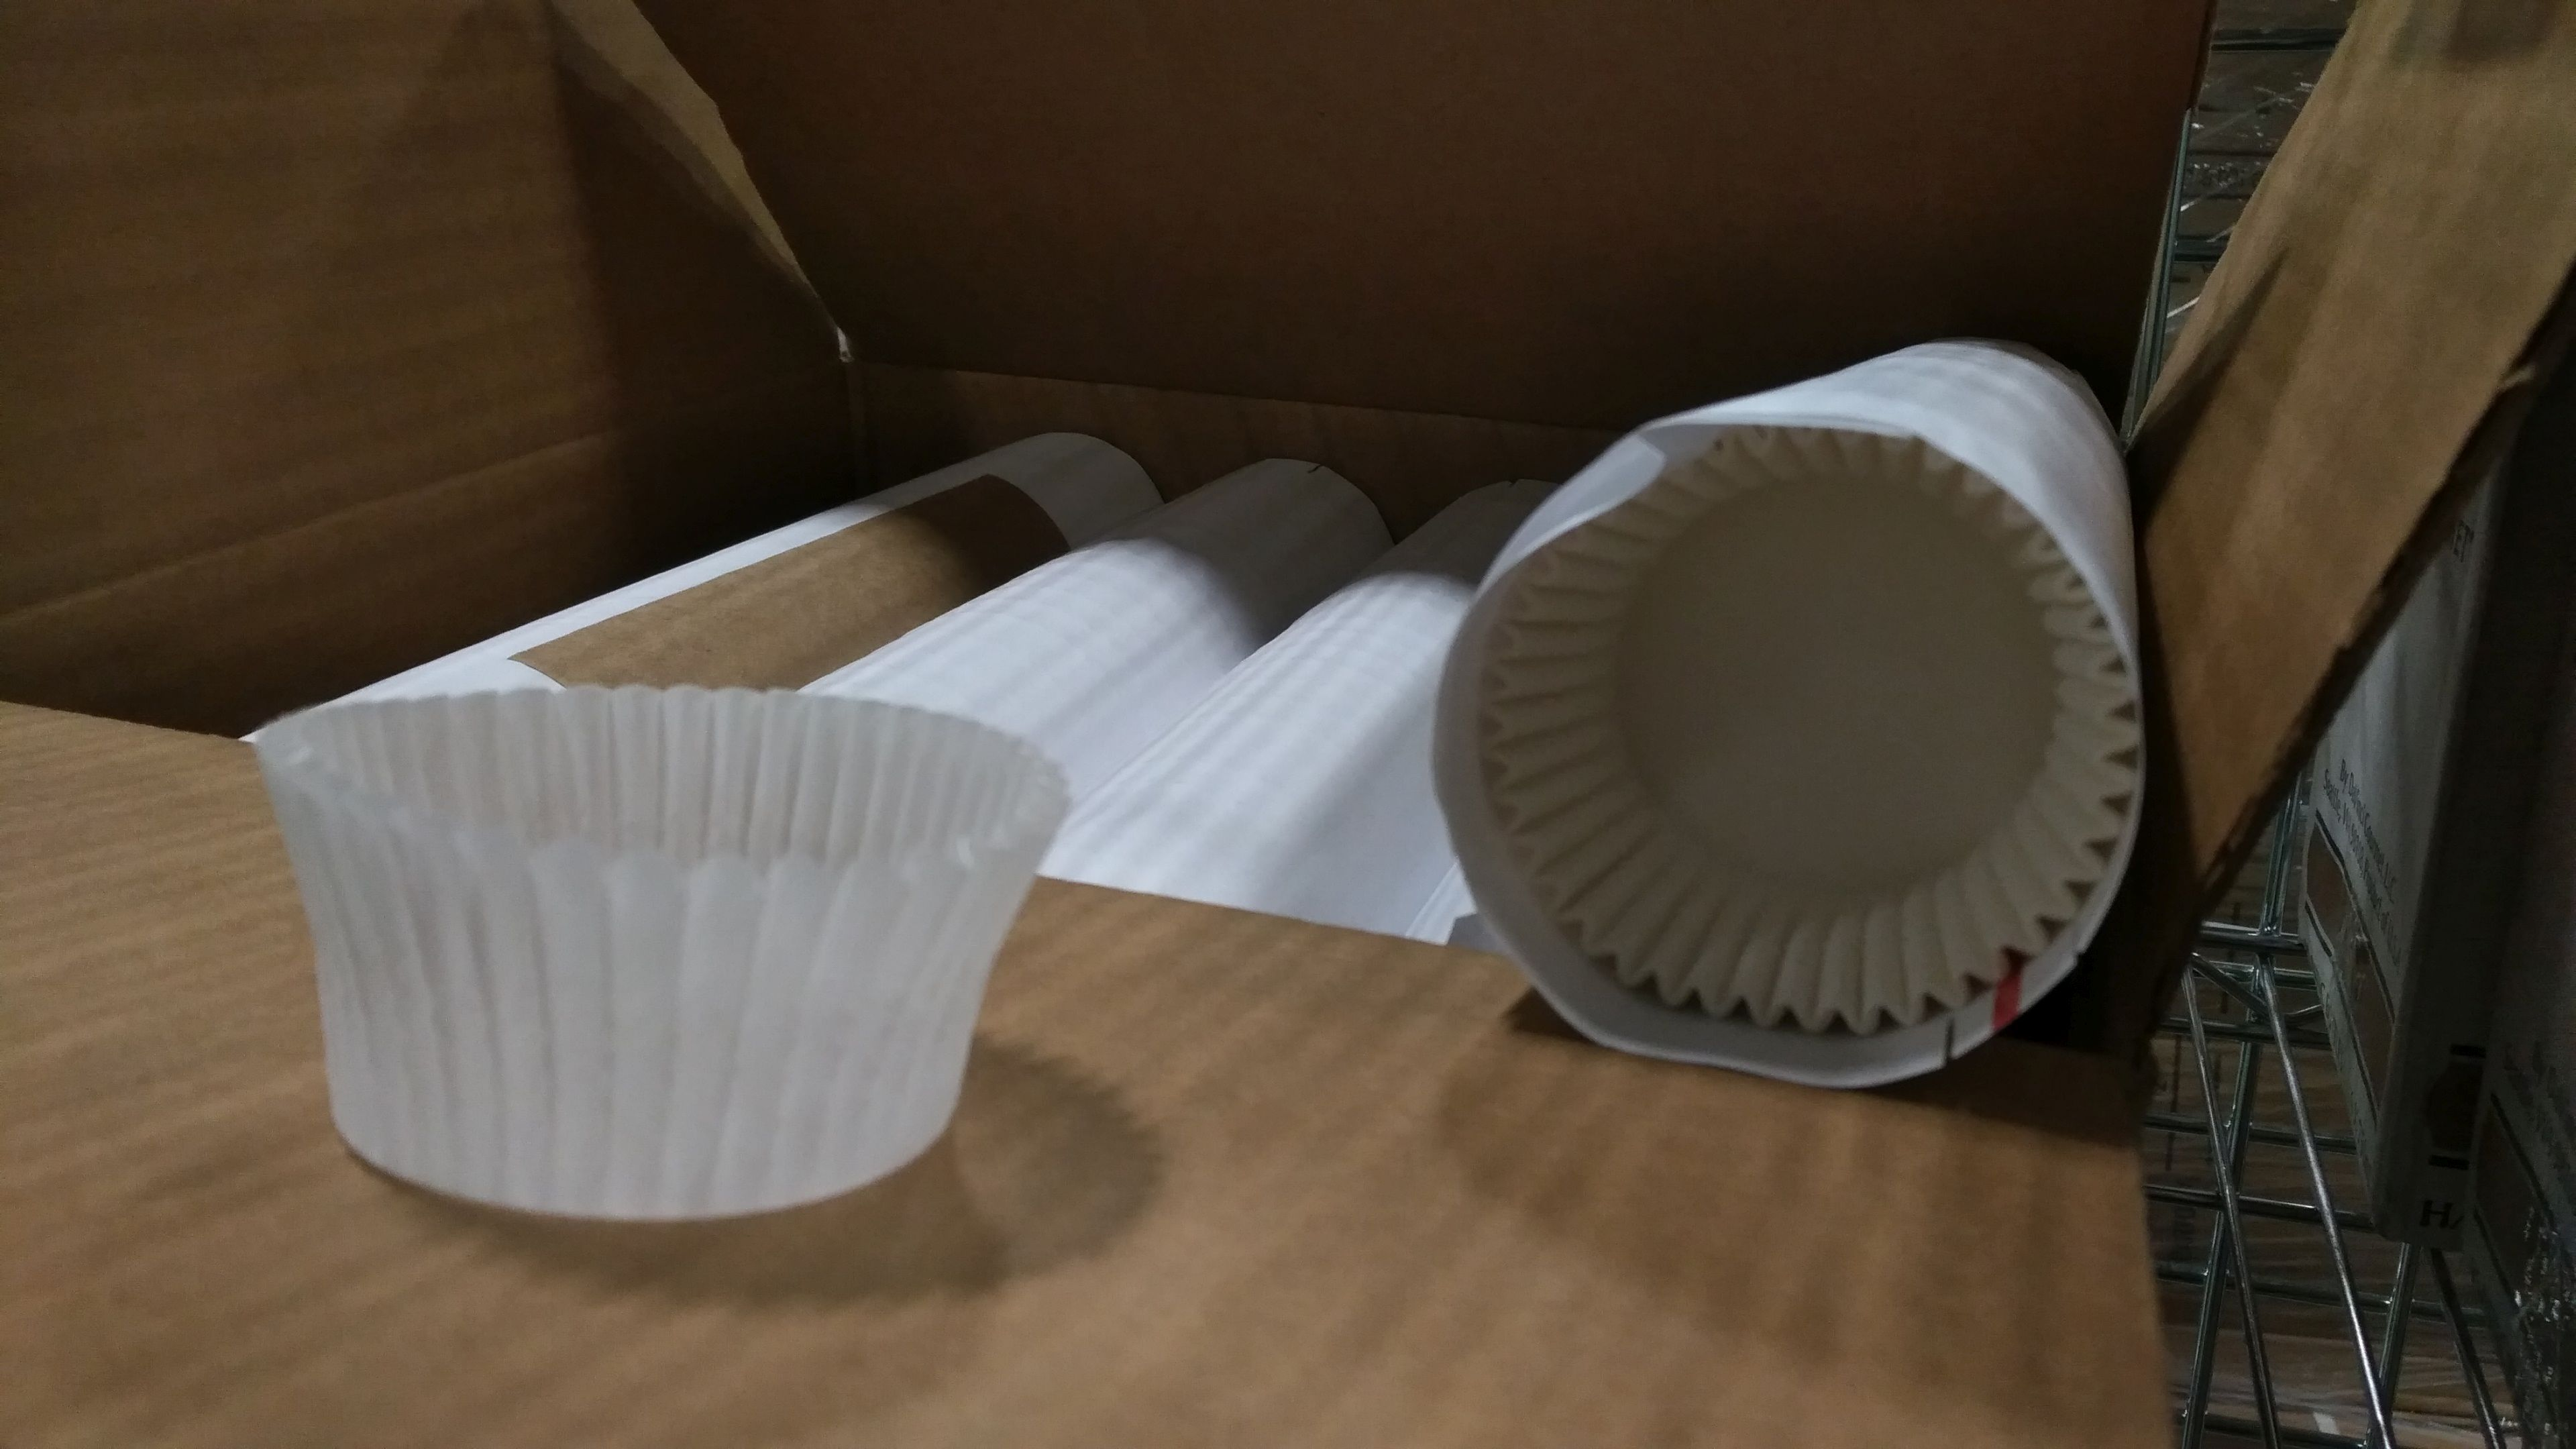 """Lot 56 - White Baking Cups, 2"""" x 4.5"""" x 1.25"""" - Lot of 5000"""